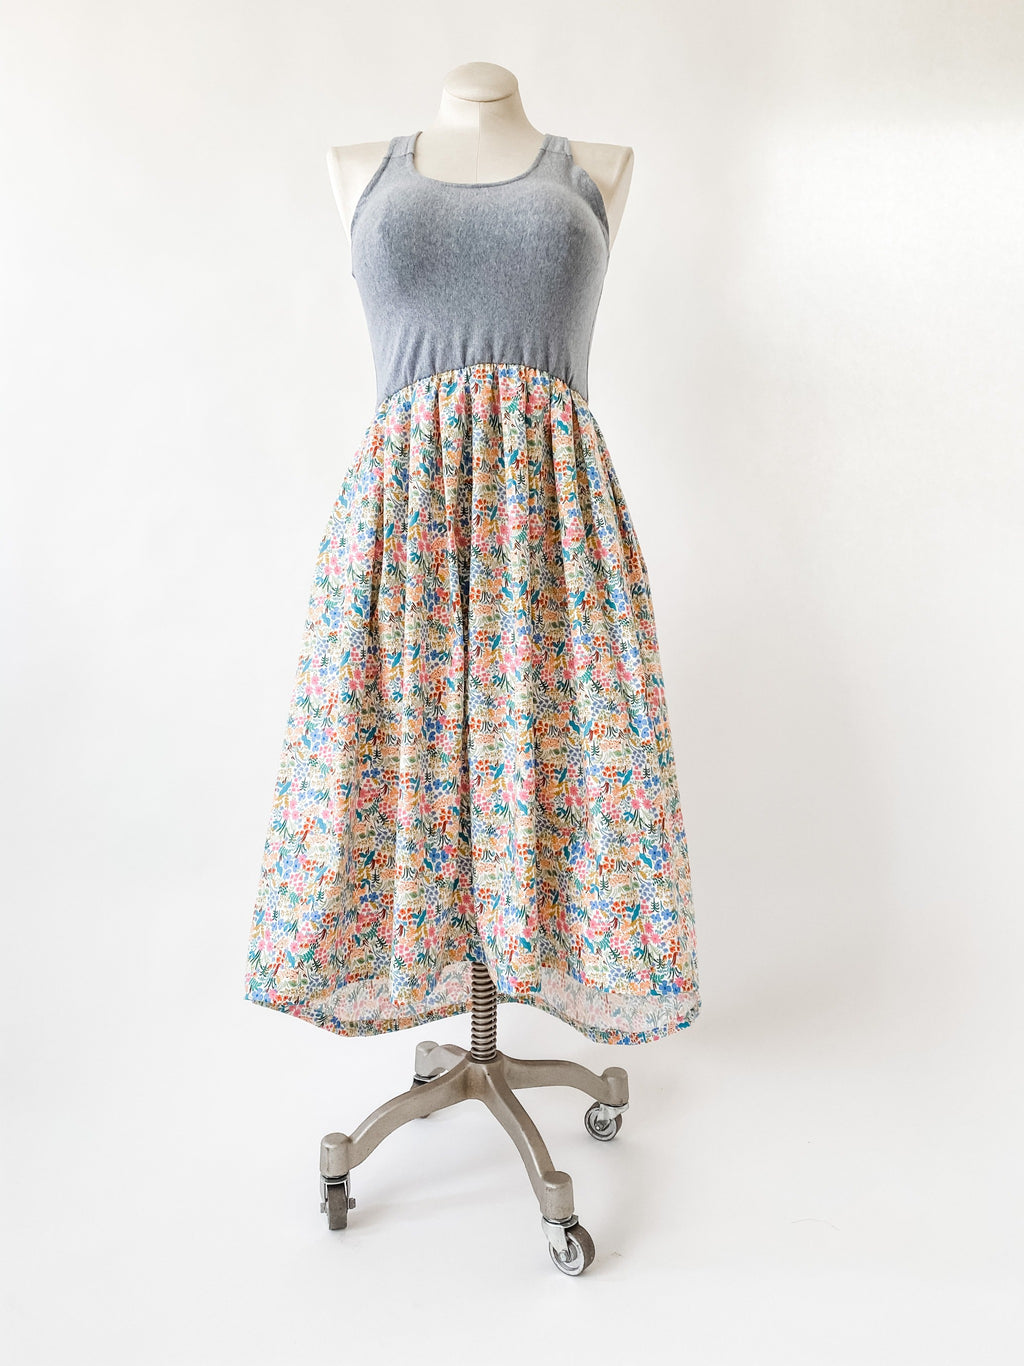 Together Dress in Floral Garden with Train - made with Rifle Paper Co Fabric